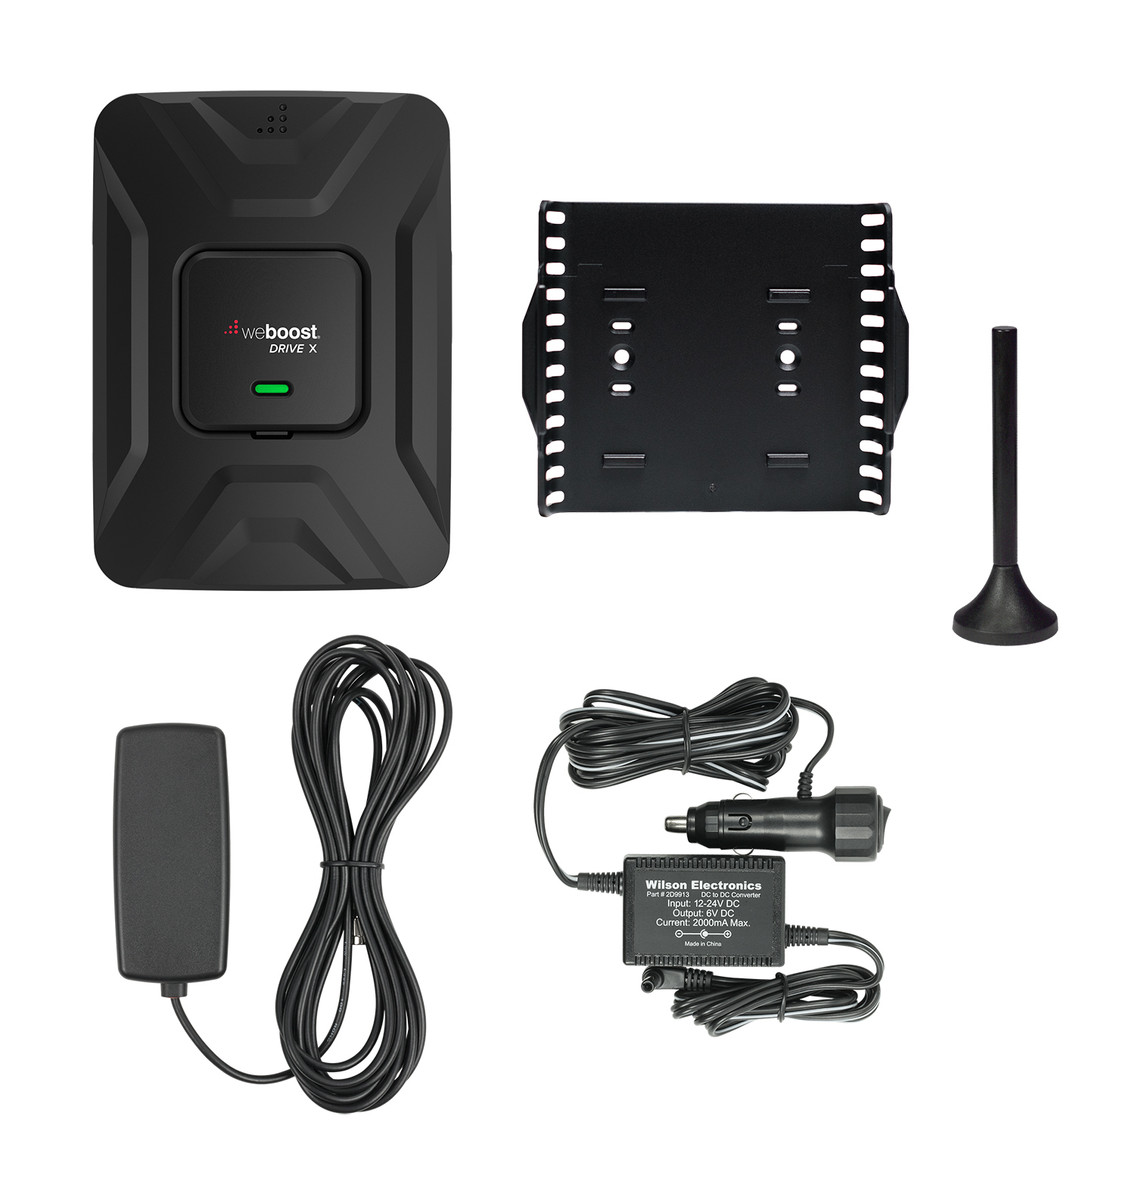 weBoost Drive X Cell Phone Signal Booster Kit - 655021